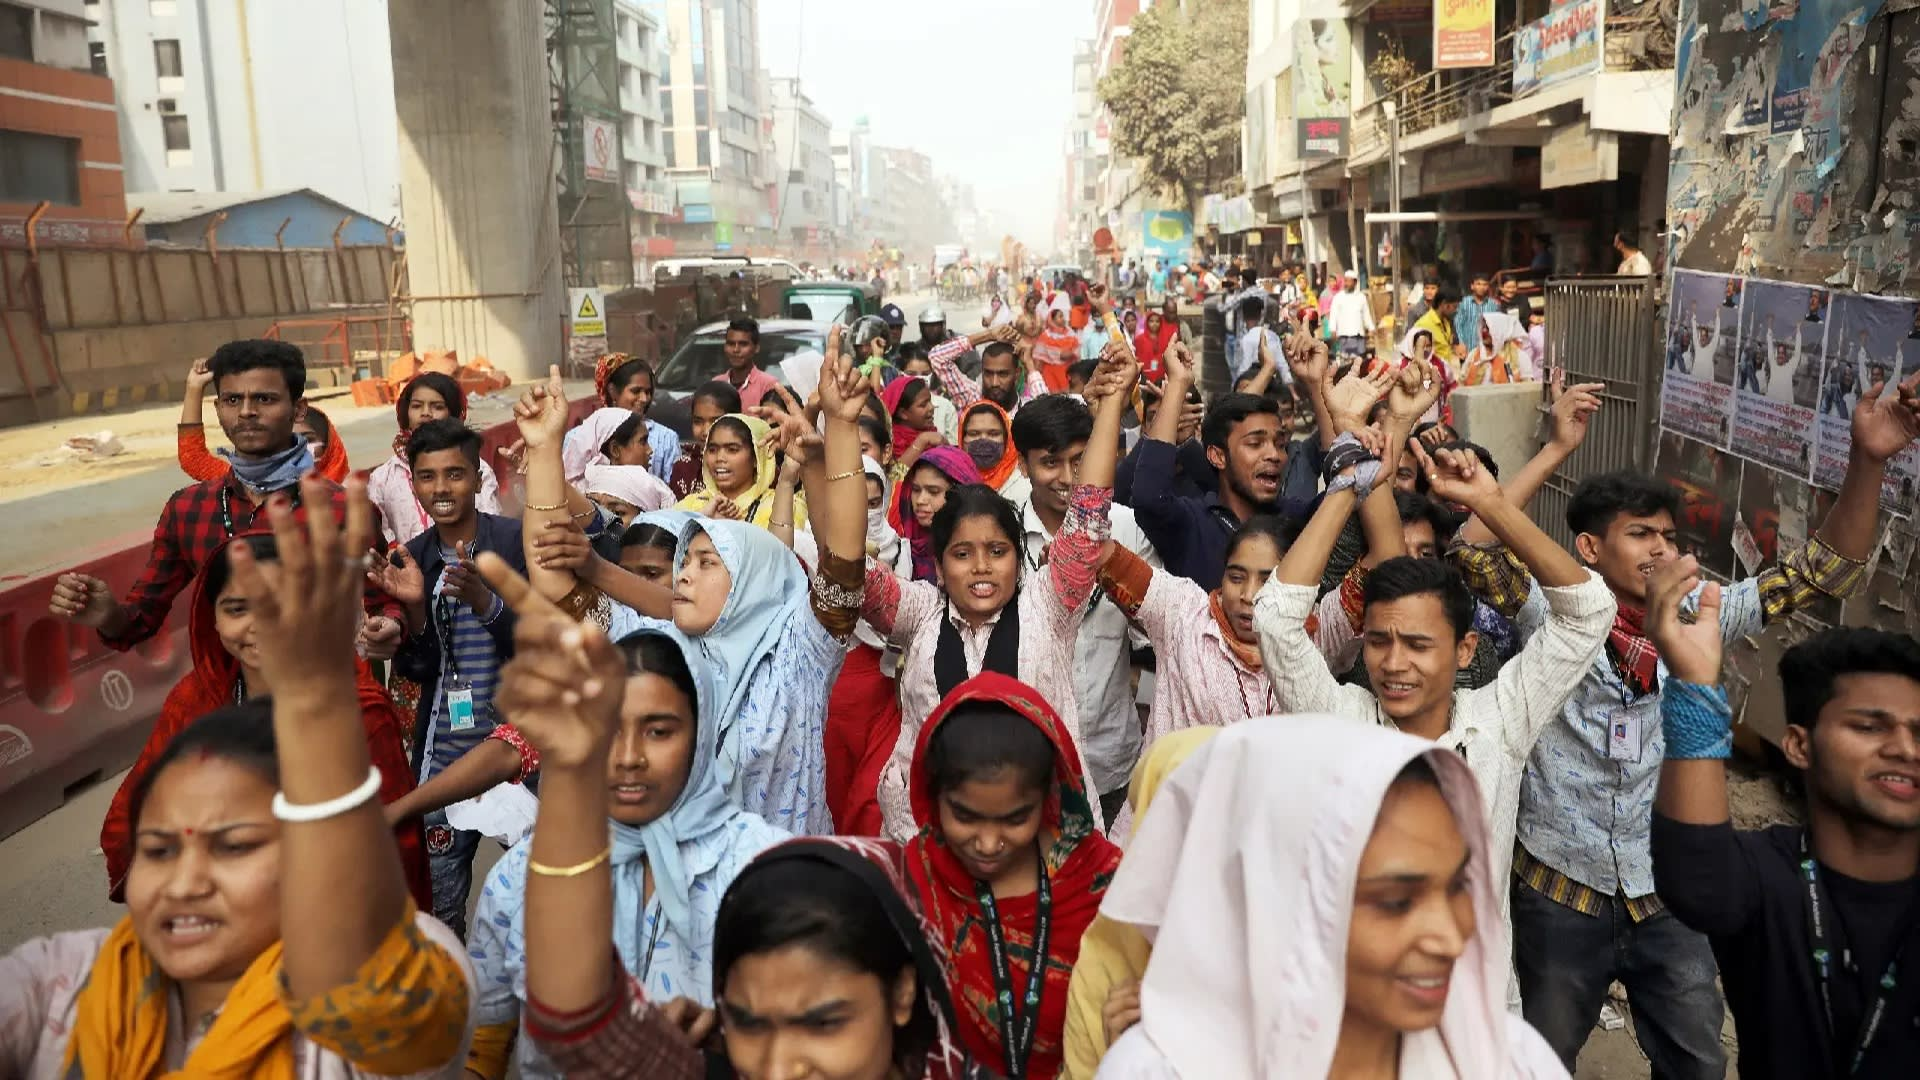 Garment factory workers took to Dhaka's streets for a fifth straight day on Thursday to protest unfair pay practices.